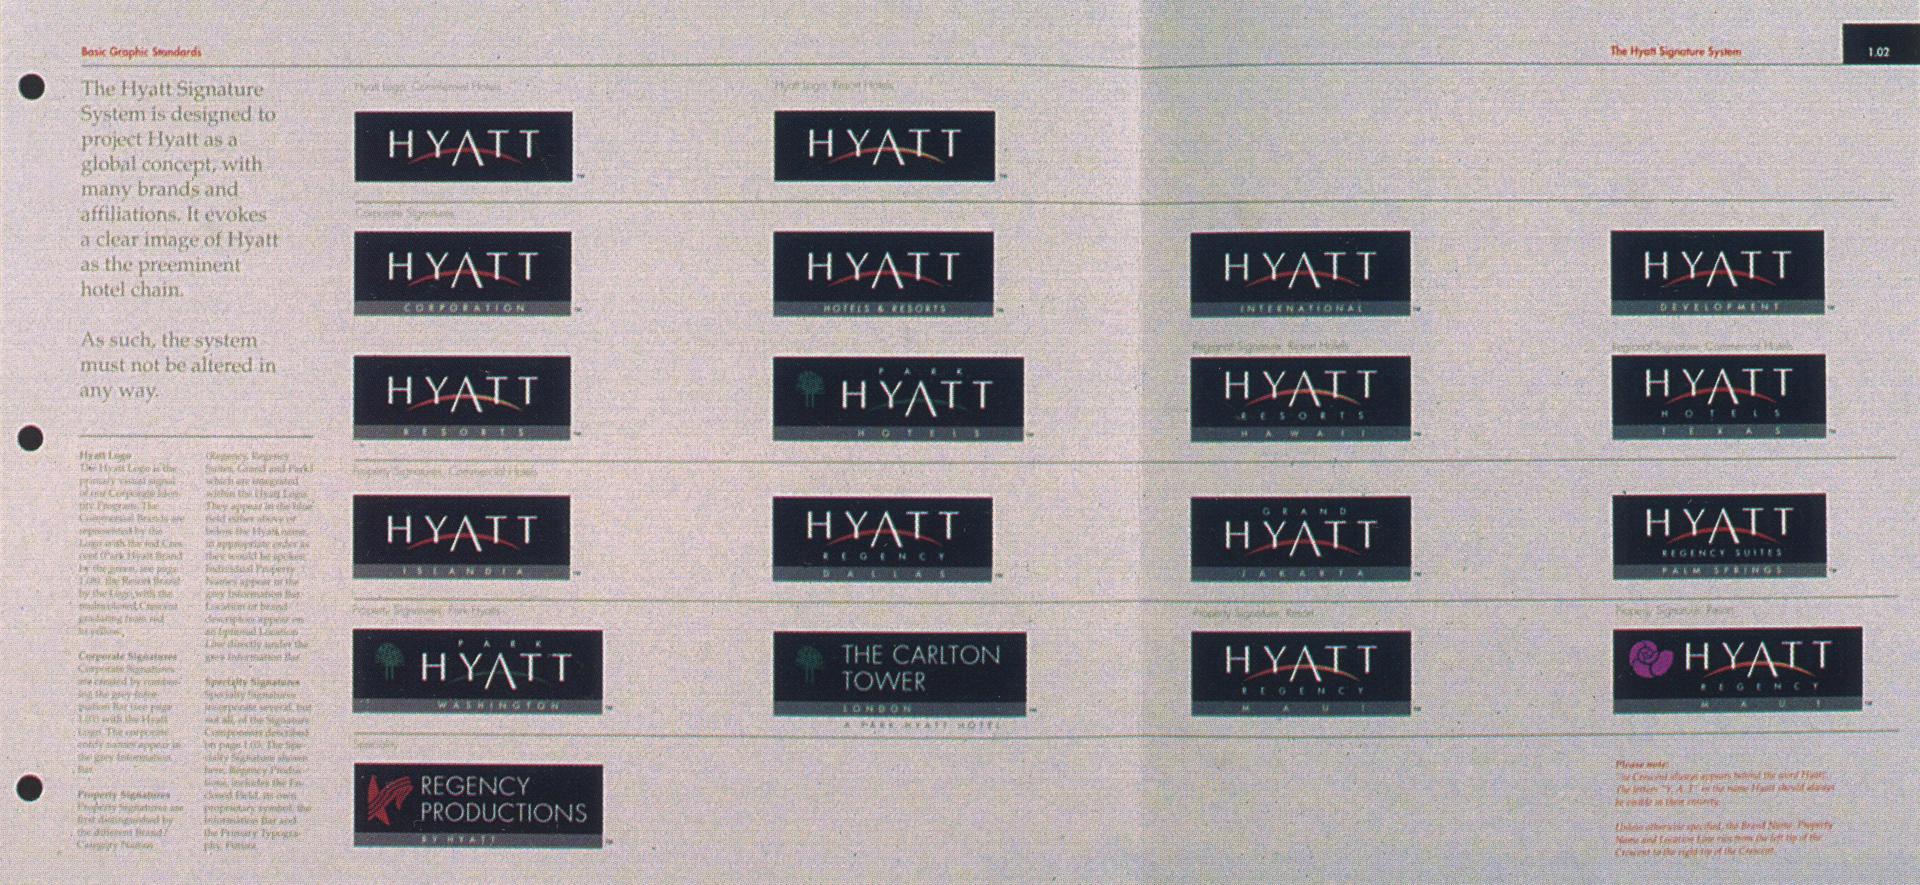 ©, Landor Associates, Hyatt Hotels Corporate Identity Program